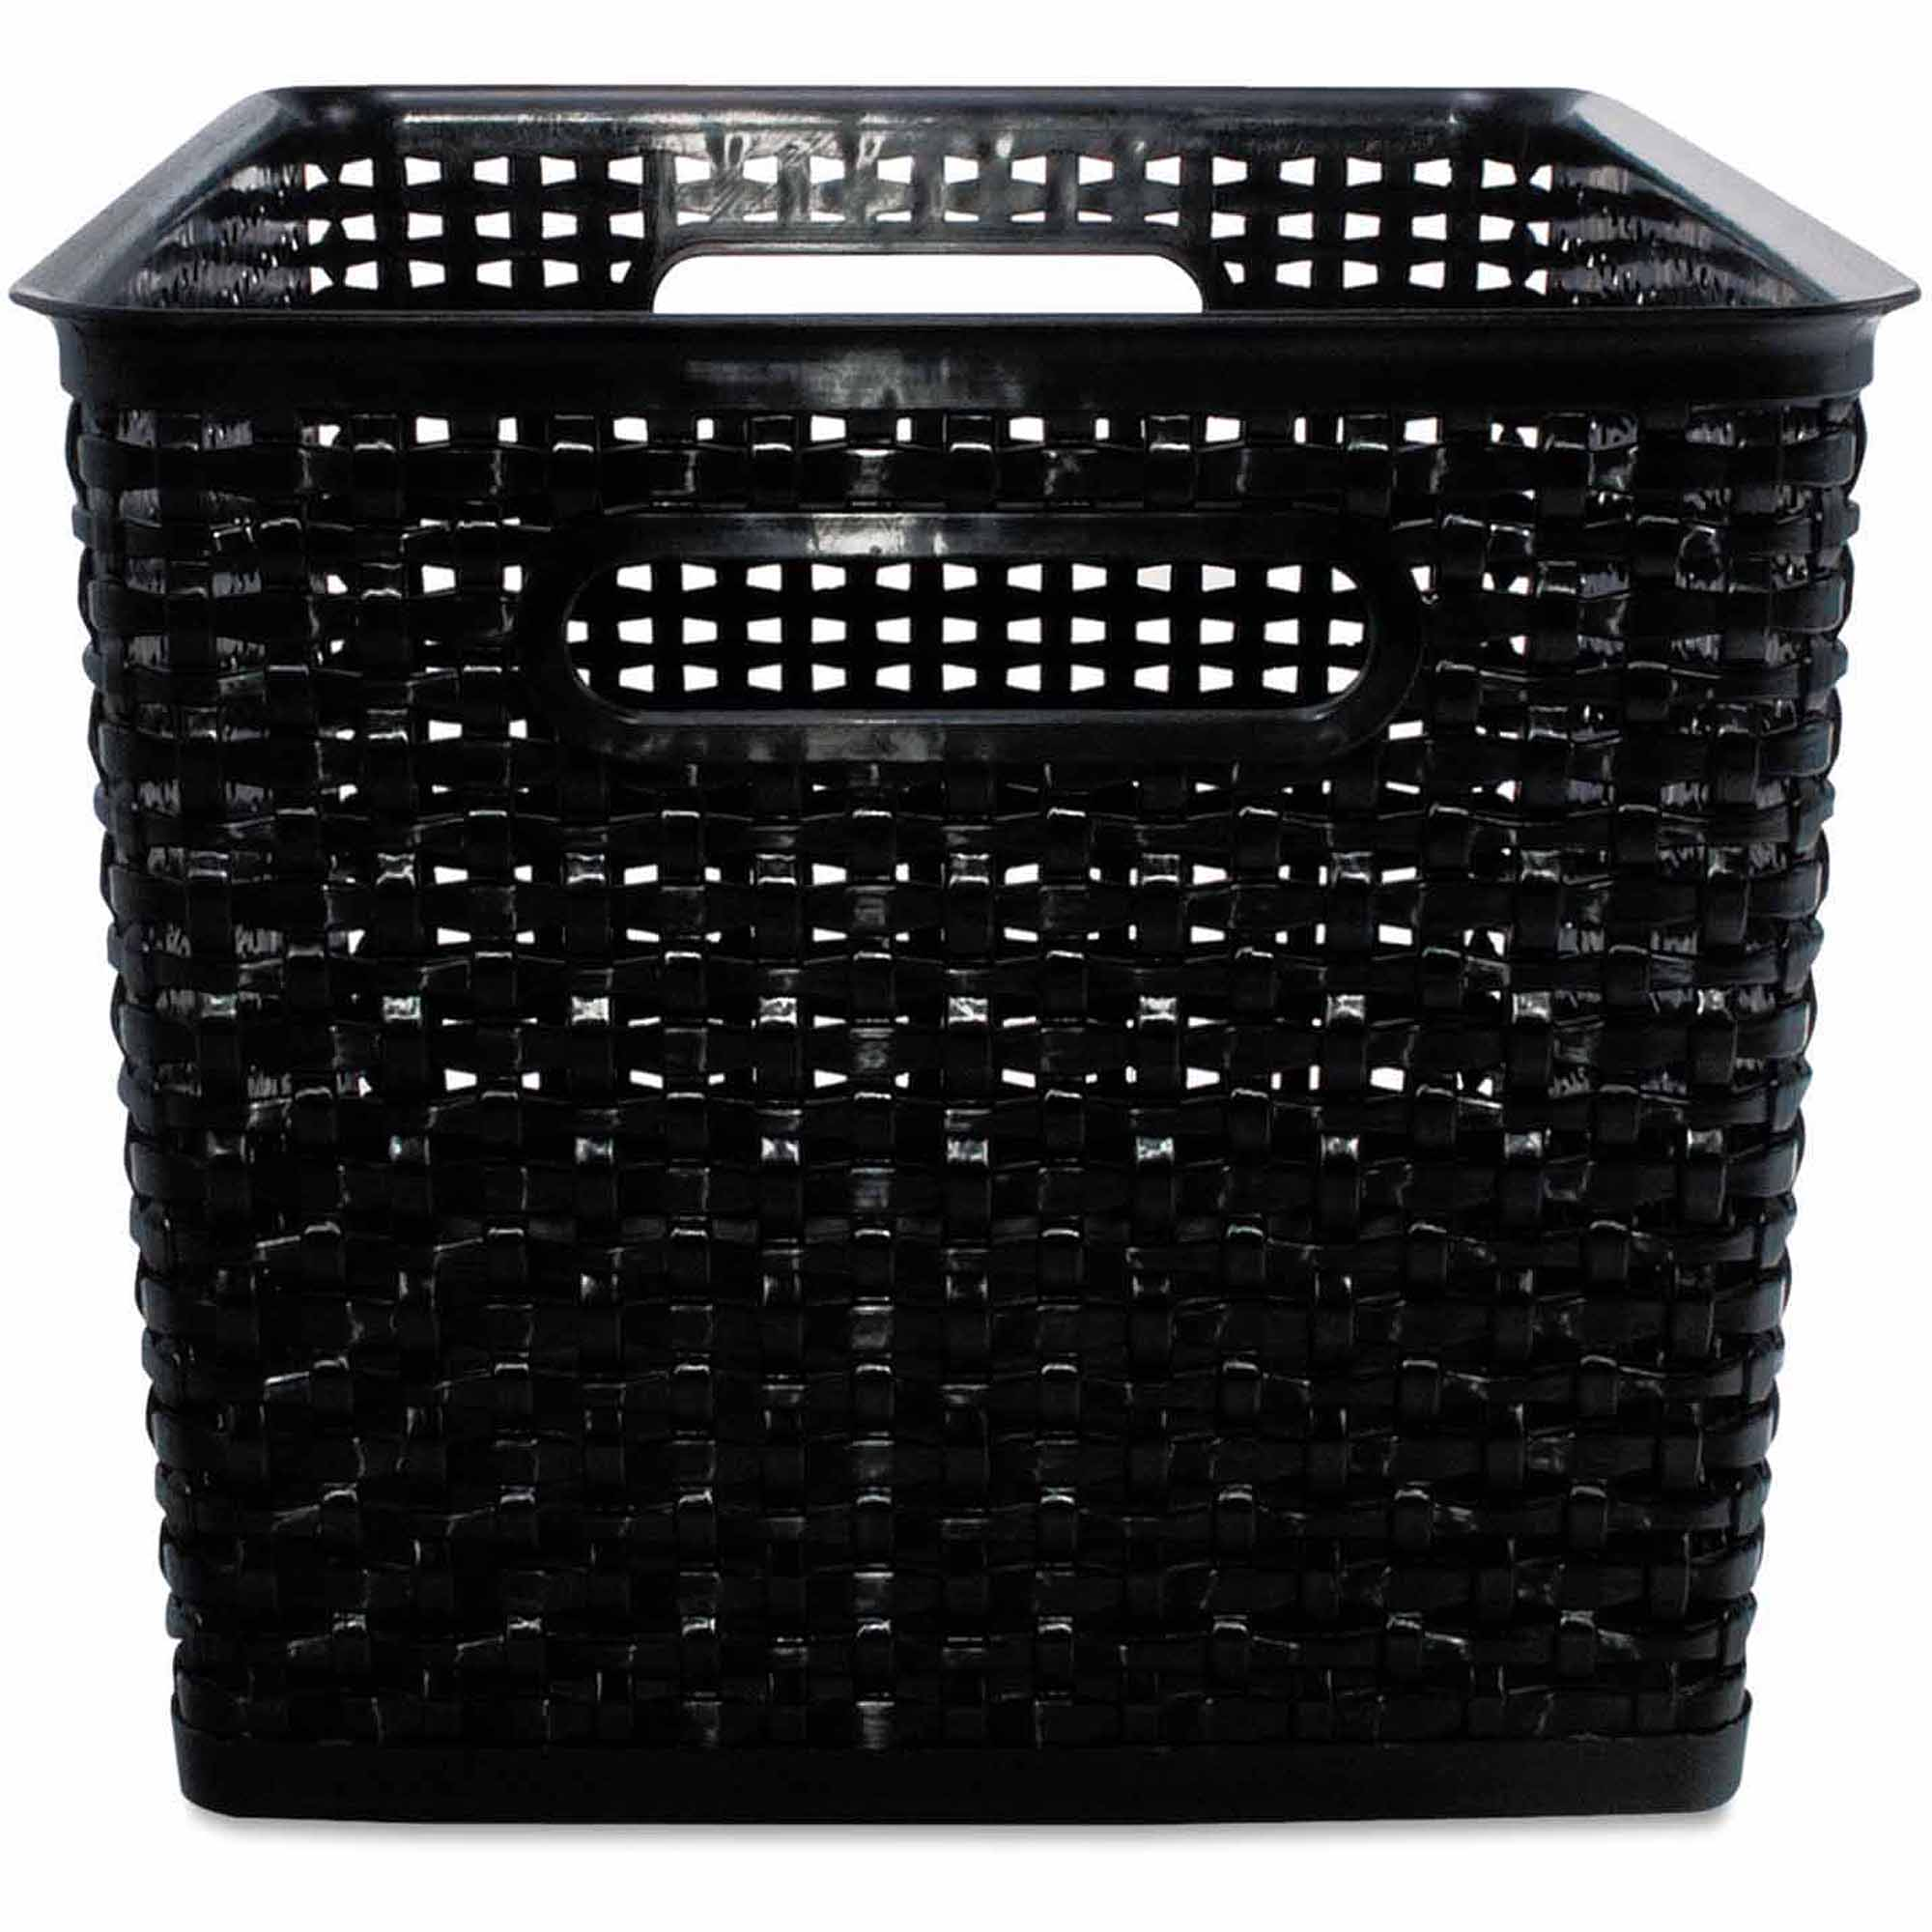 Advantus Weave Bins, Black, 2 Bins